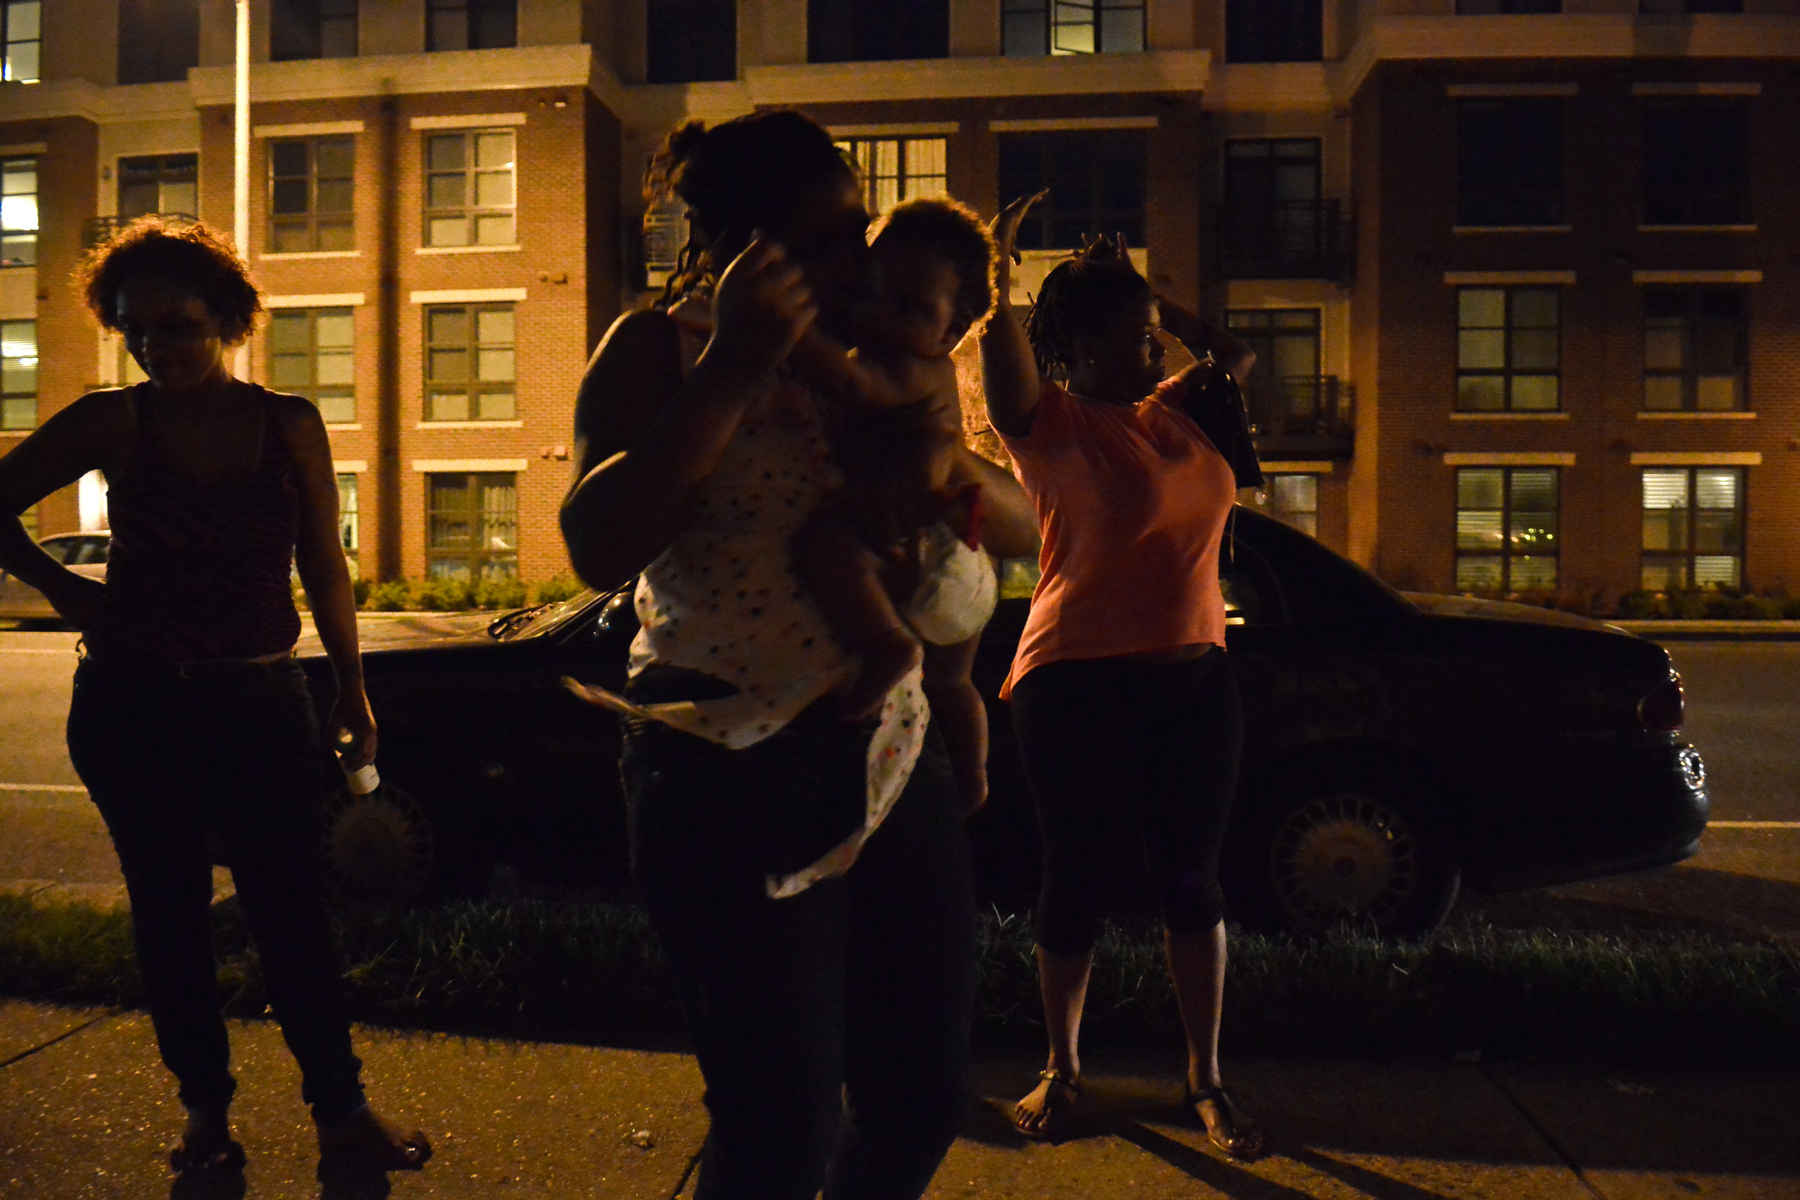 Hanging out on the street at night with a friend.  Her 10 year-old daughter dances with the baby.